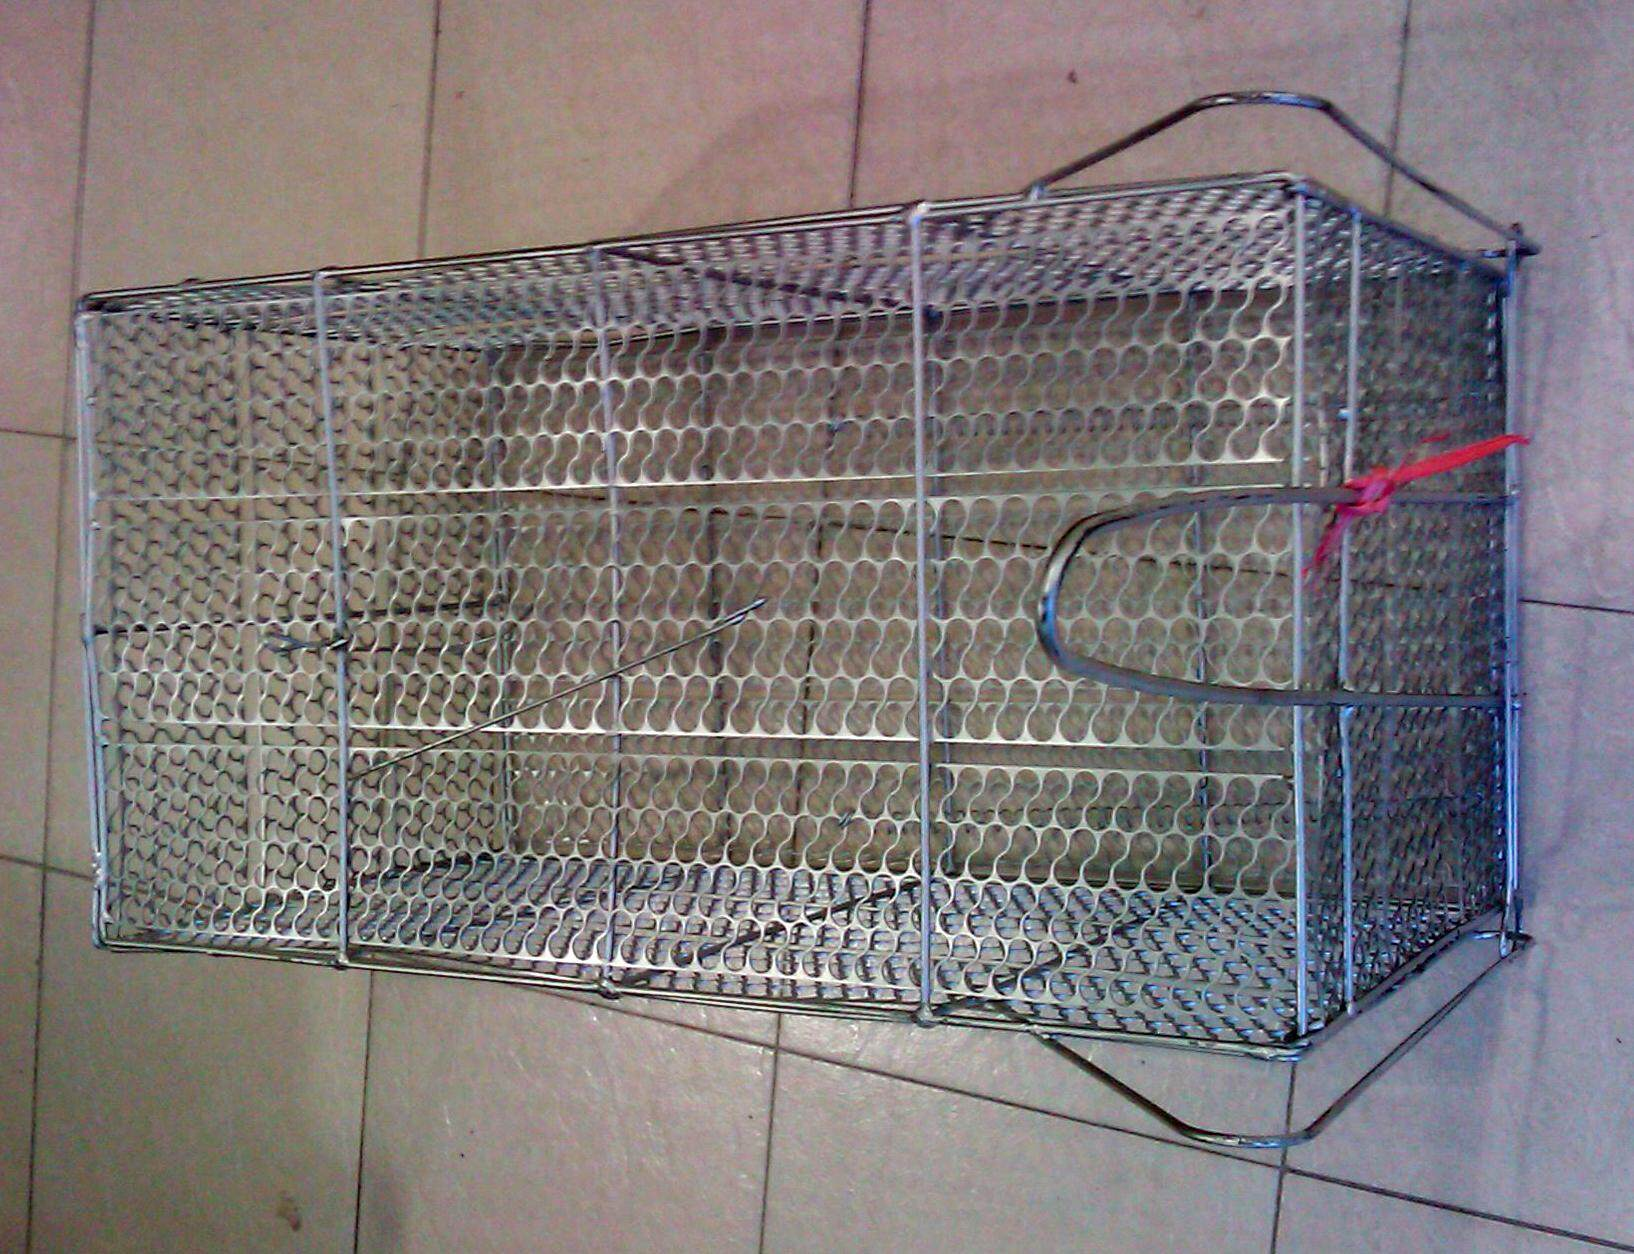 Pest Control Animal Cage Case Catcher Trap For Weasel, Musang, Dog, Cat, Monkey